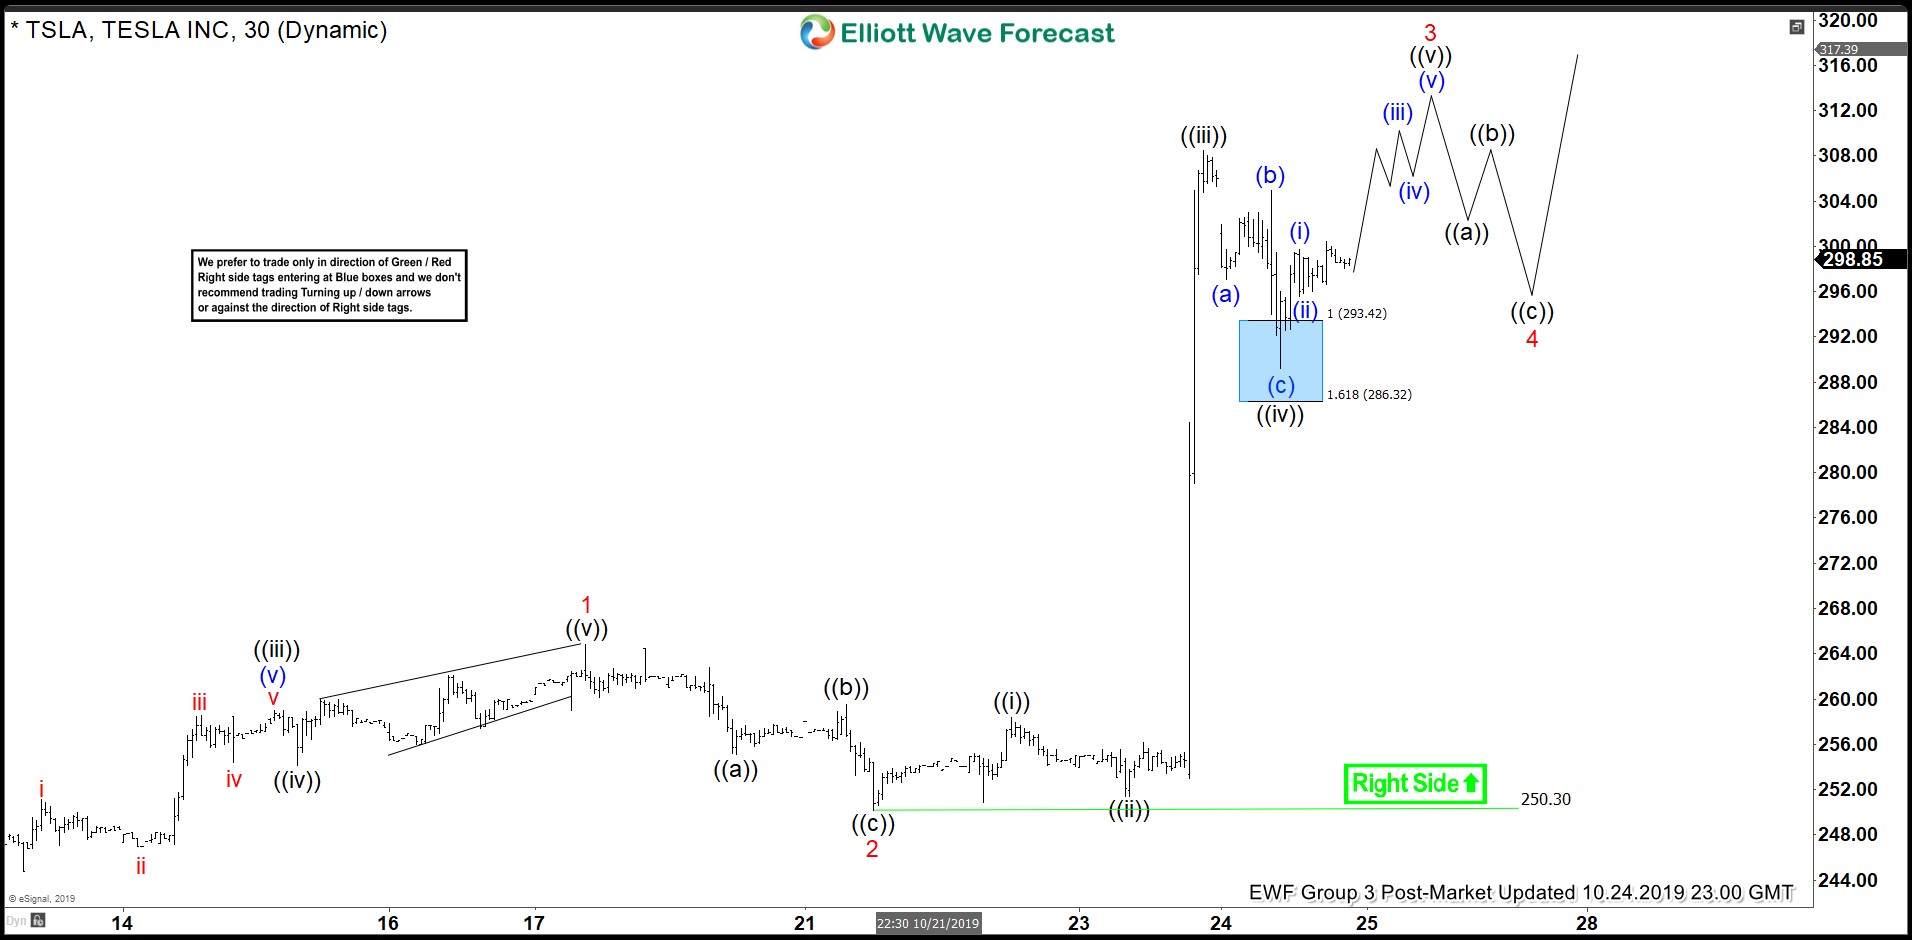 Elliott Wave View: Tesla Starts Impulse Rally